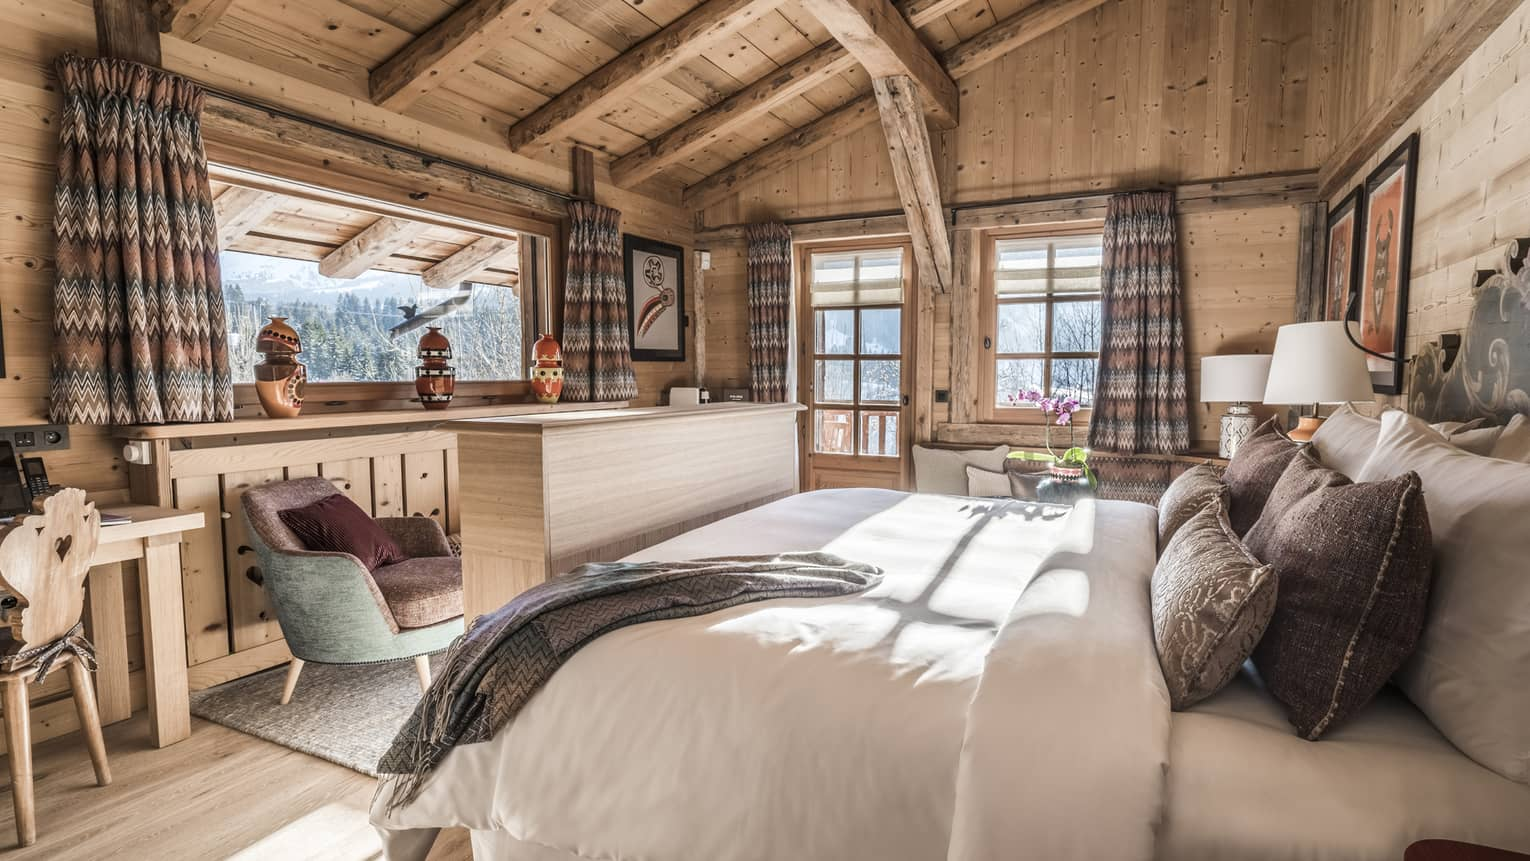 Sunny Suite Alpage room with wood, wool and tweed decor, bed, chairs near bright windows